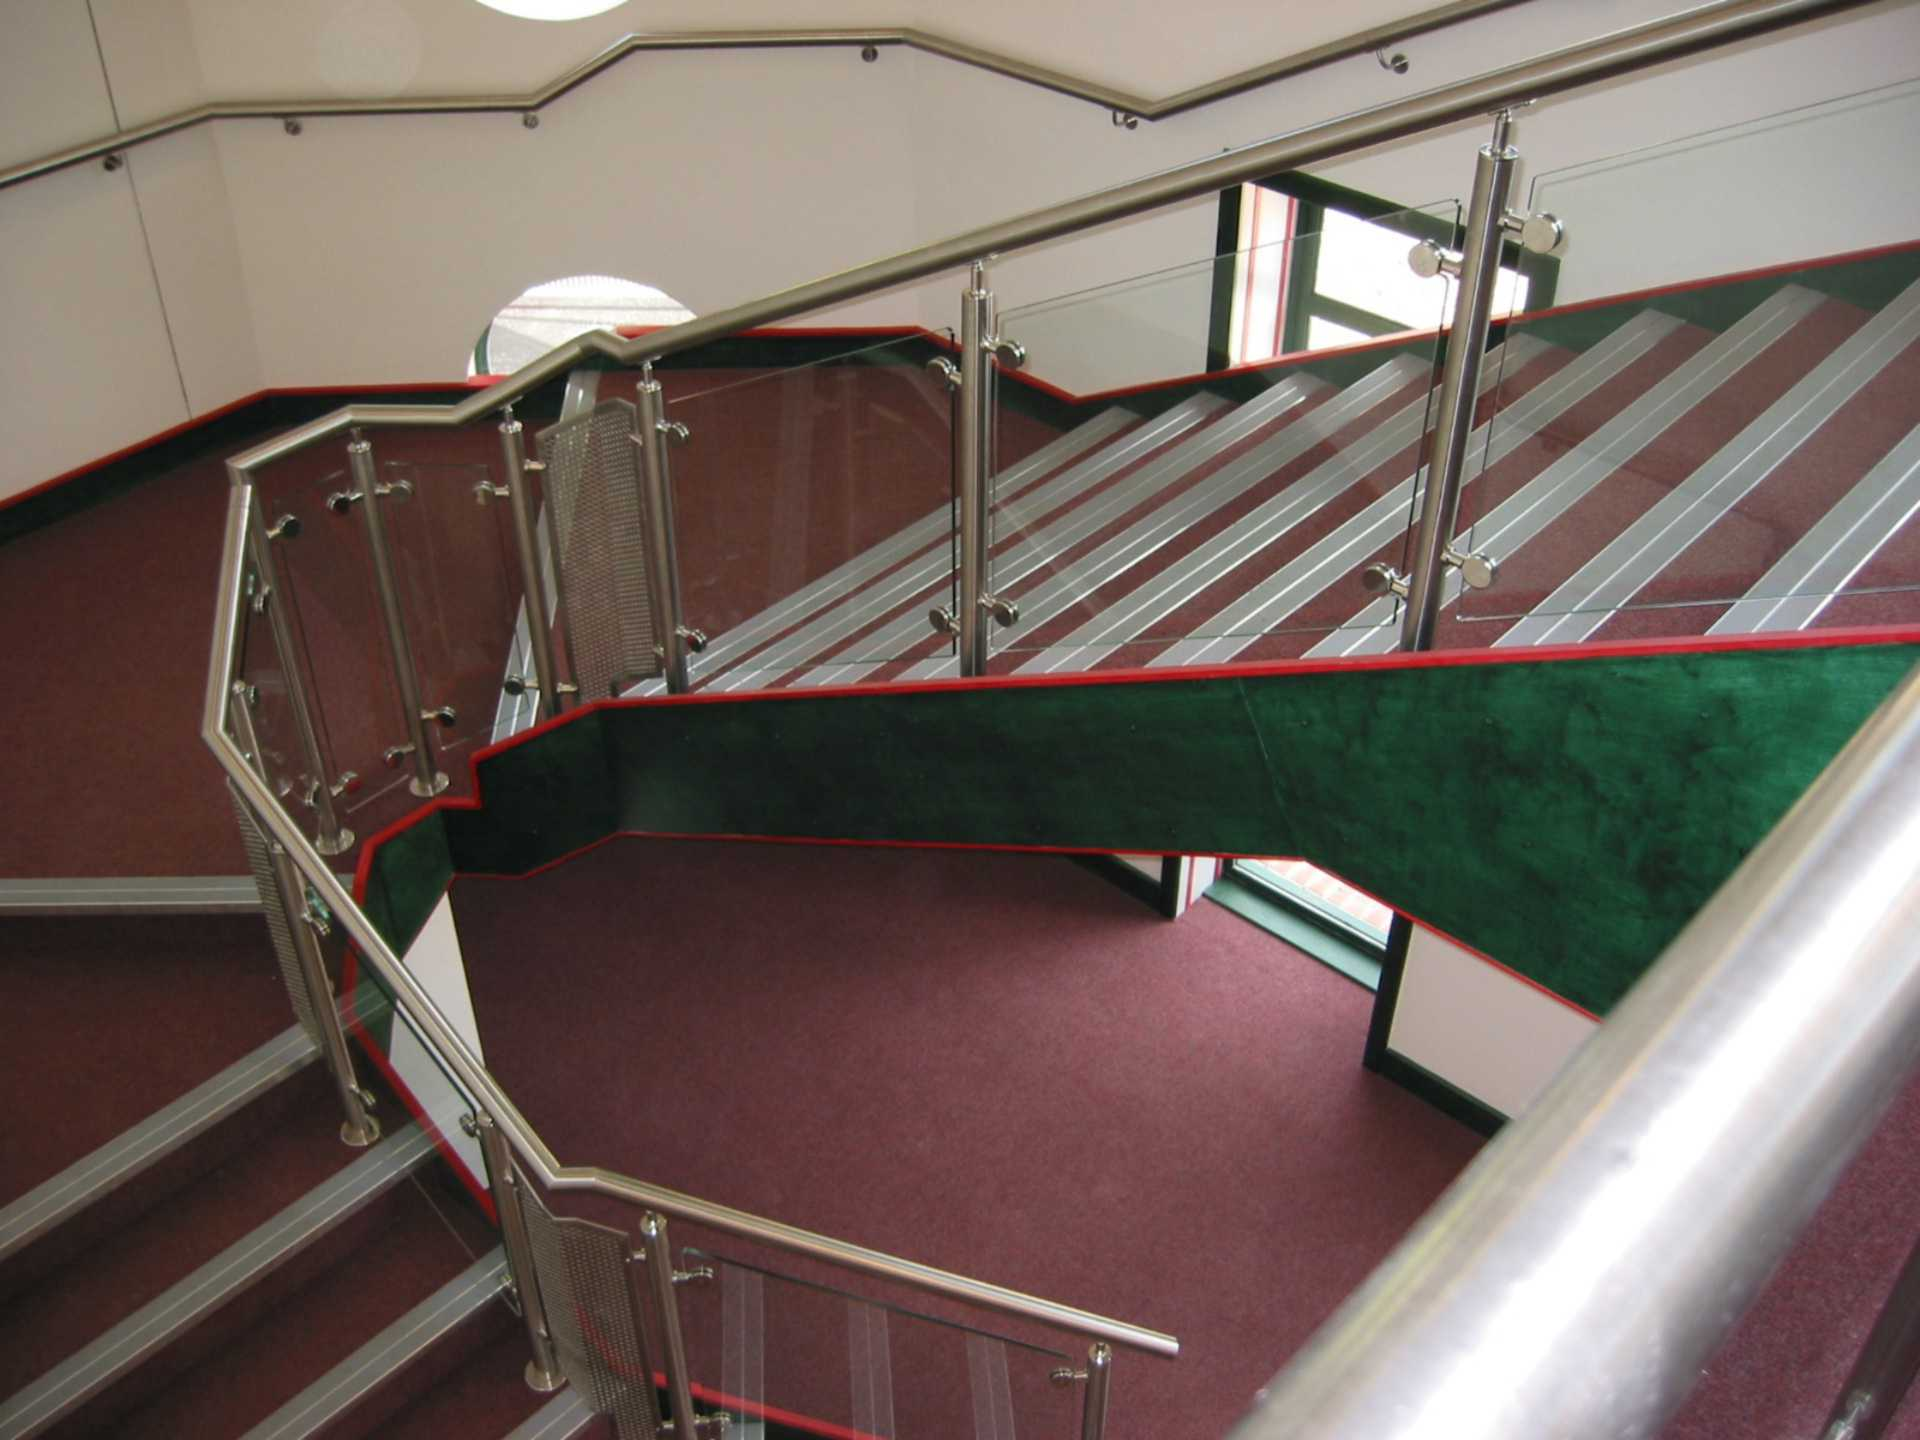 stainless steel handrail with glass infill panels